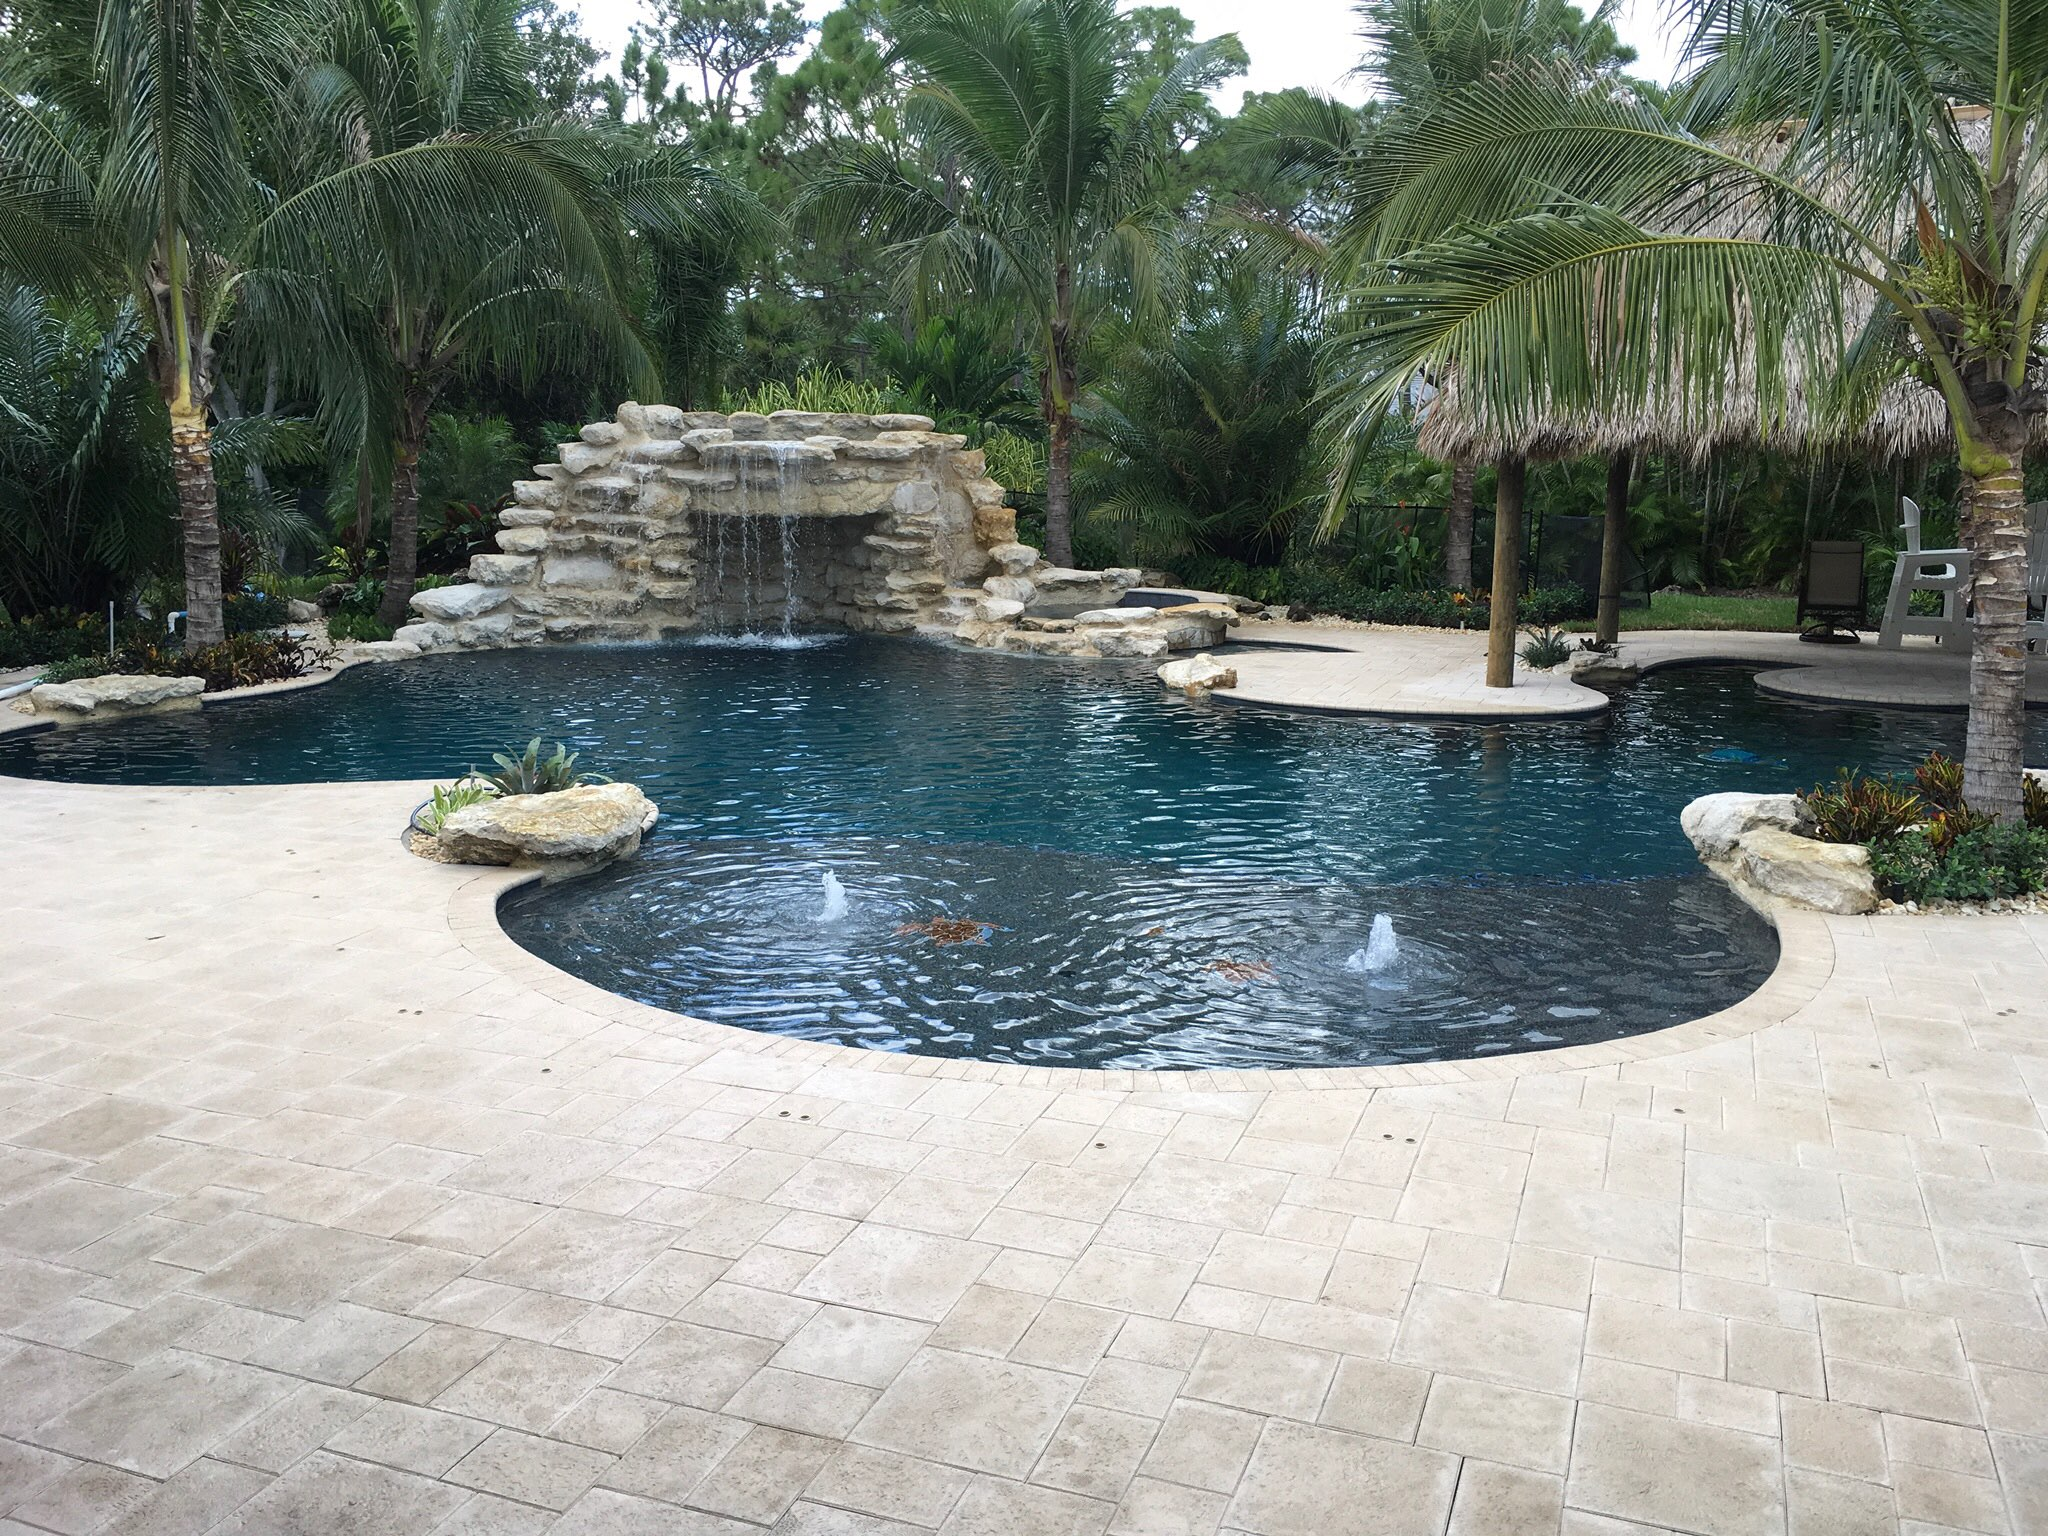 rhr pools of jupiter fl rock waterfall, oversized shelf with bubblers. gorgeous florida pool